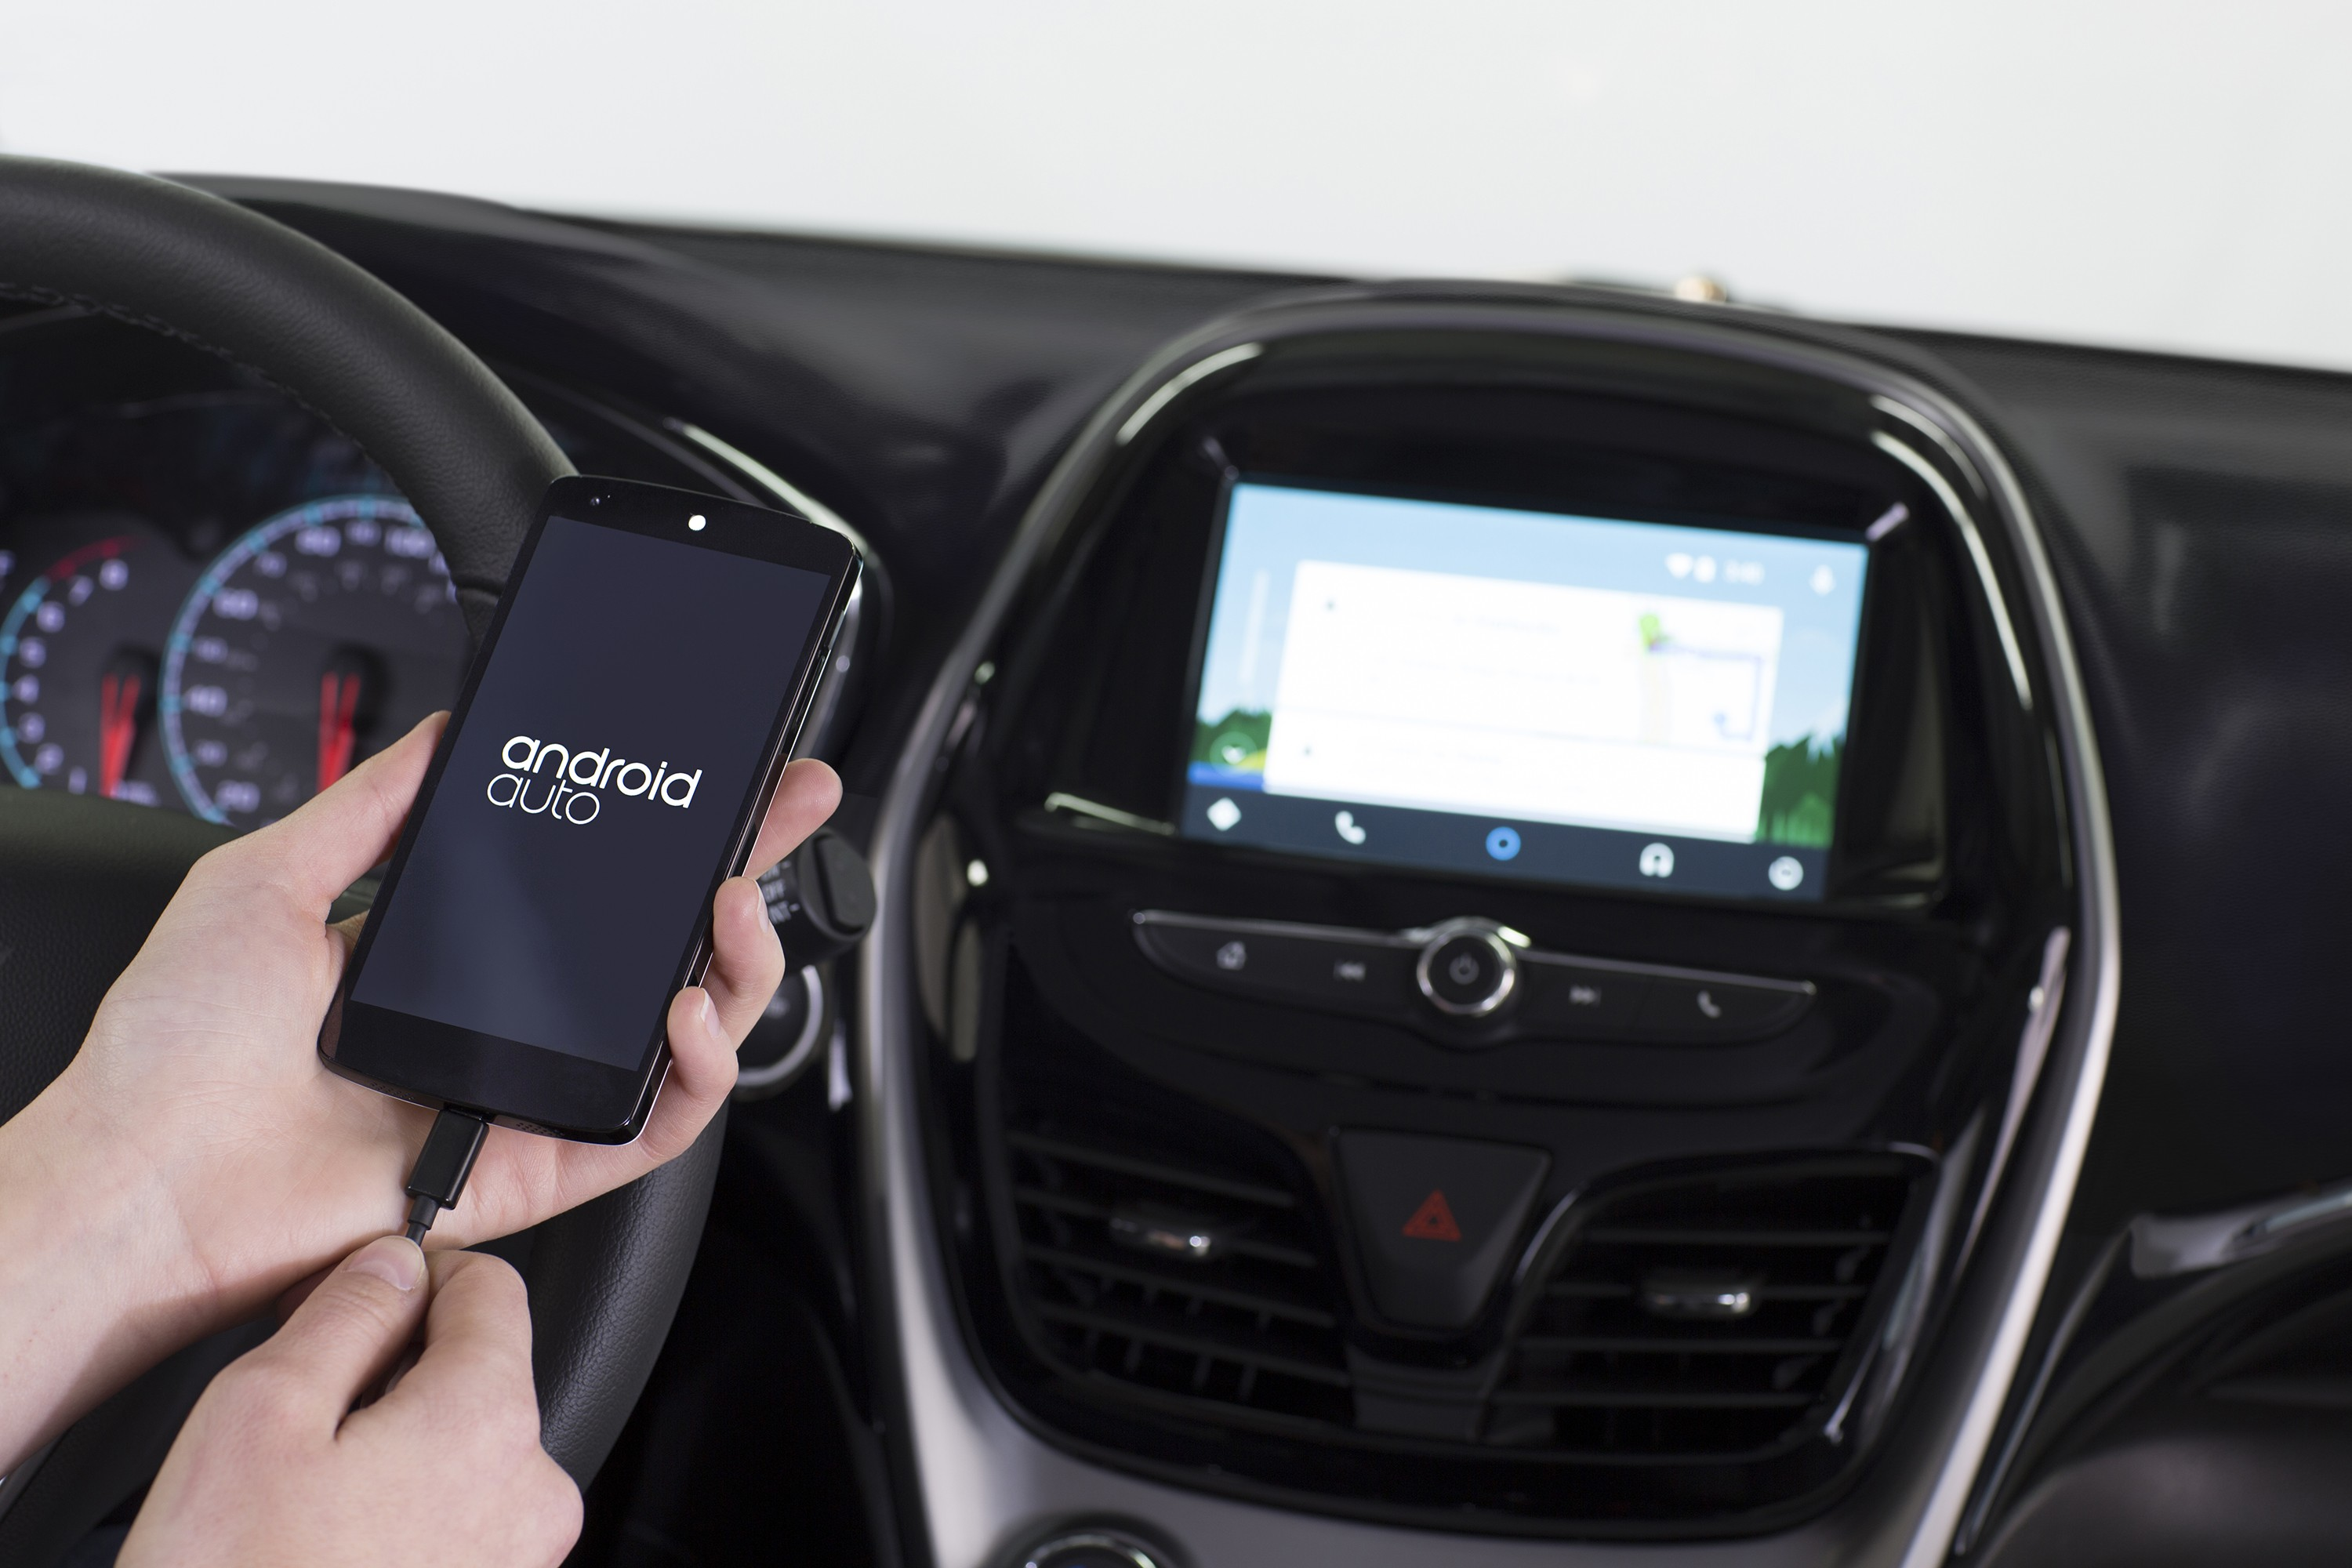 2016 Chevrolet Cruze Teased Boasting Android Auto and ...